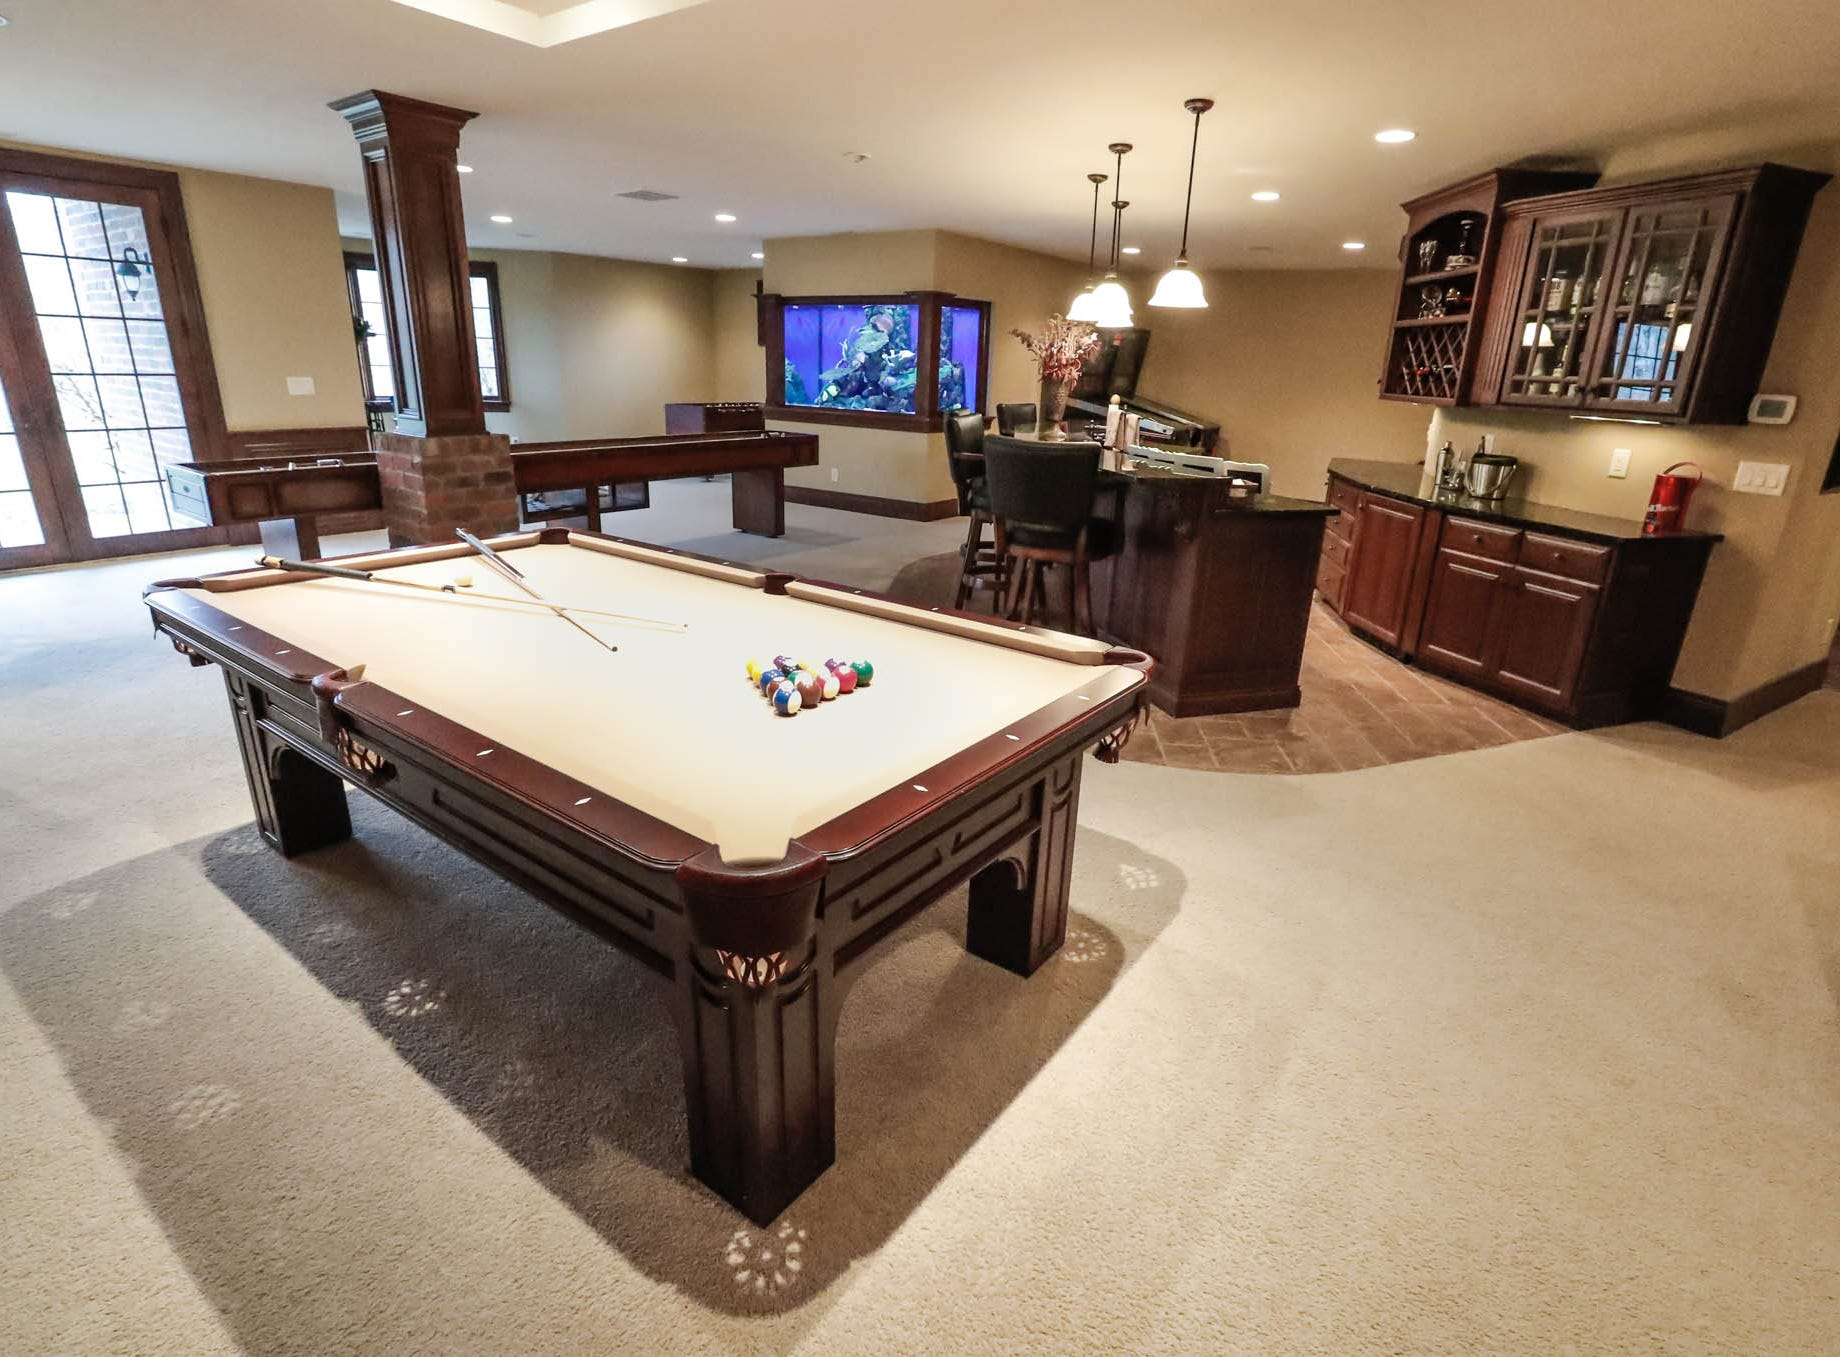 The basement of a traditional $2m home up for sale in Bargersville Ind., features a pool table, shuffleboard table, aquarium, bar, and home theatre room on Wednesday, Jan. 9, 2019. The home sits on 8.1 acres.